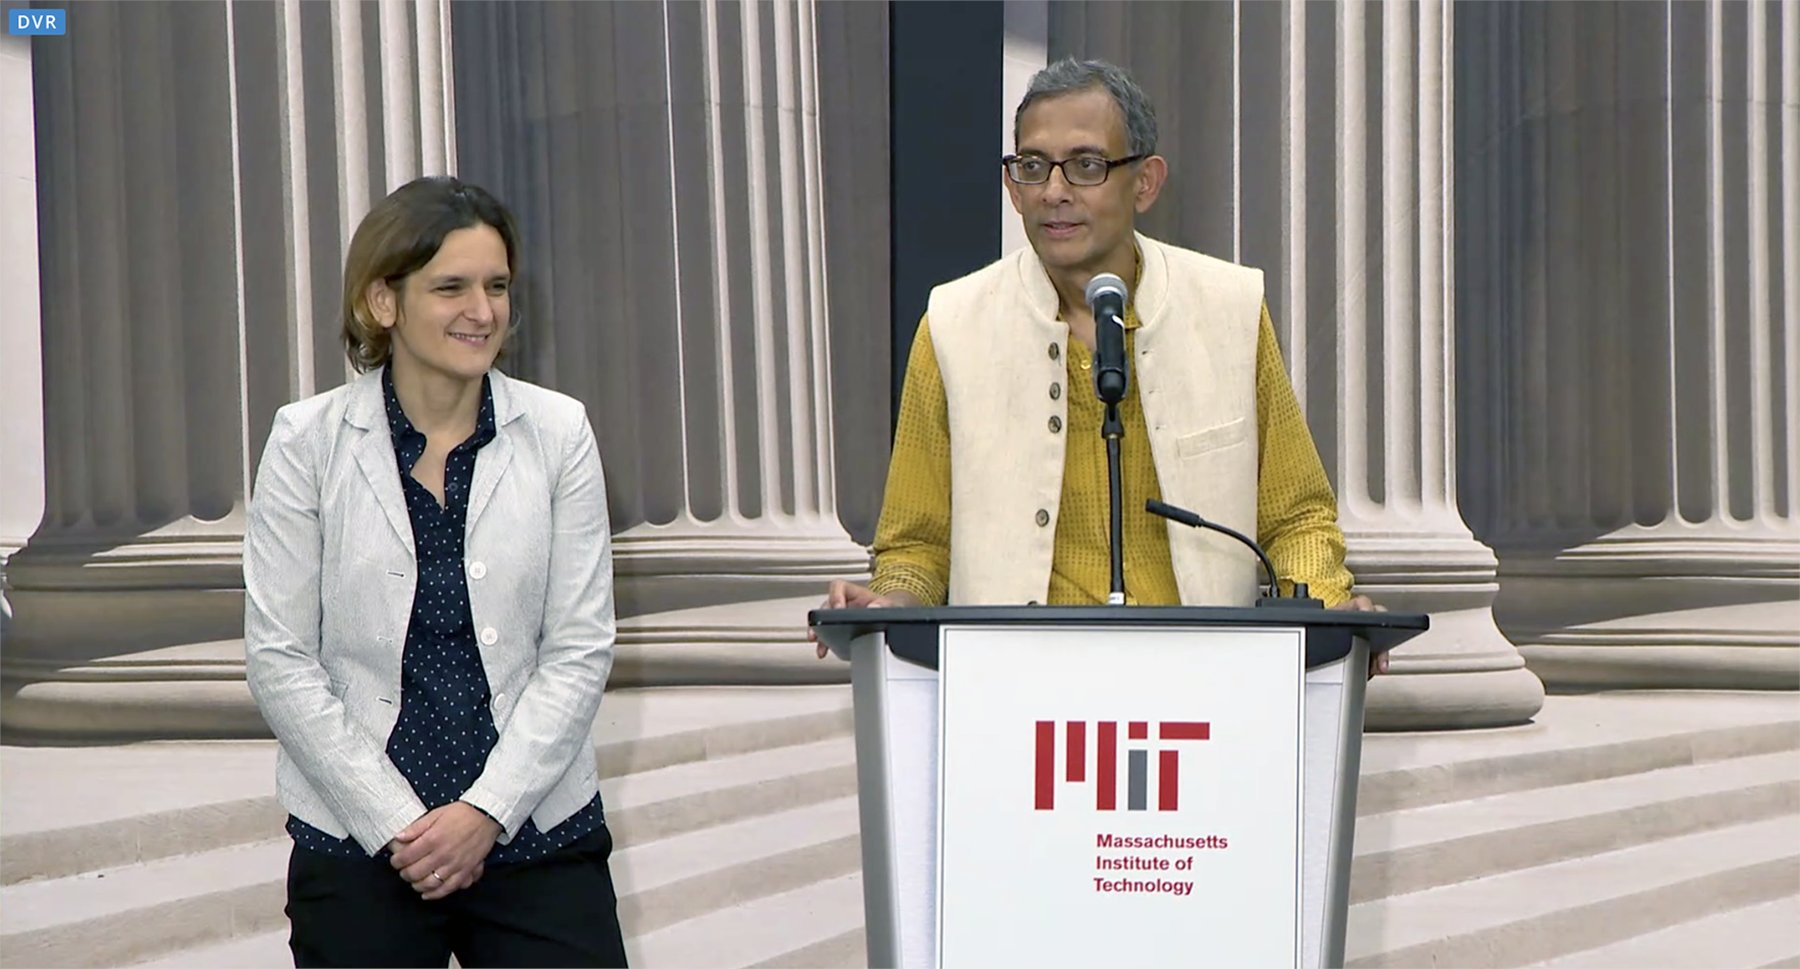 Banerjee was the joint supervisor of Duflo's PhD at MIT. Photo courtesy: Twitter/@MIT